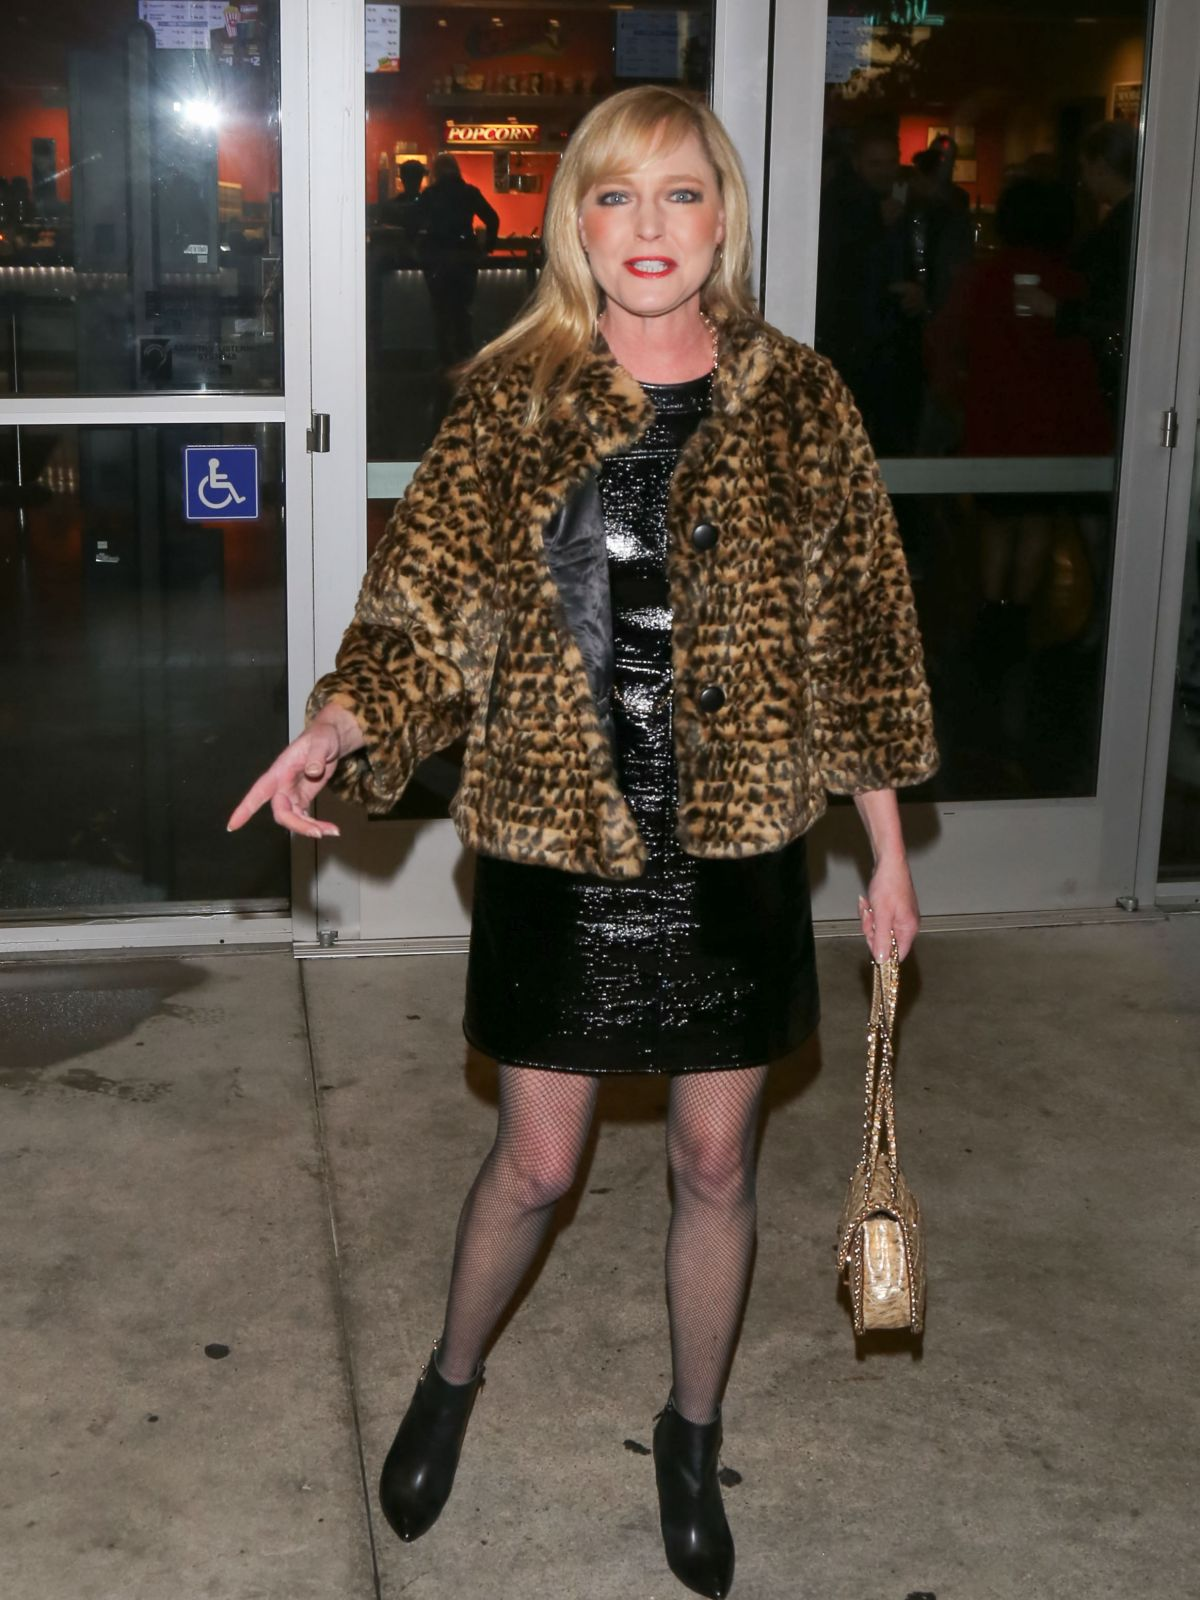 LISA WILCOX at Noho 7 Movie Theater in Los Angeles 01/18 ...